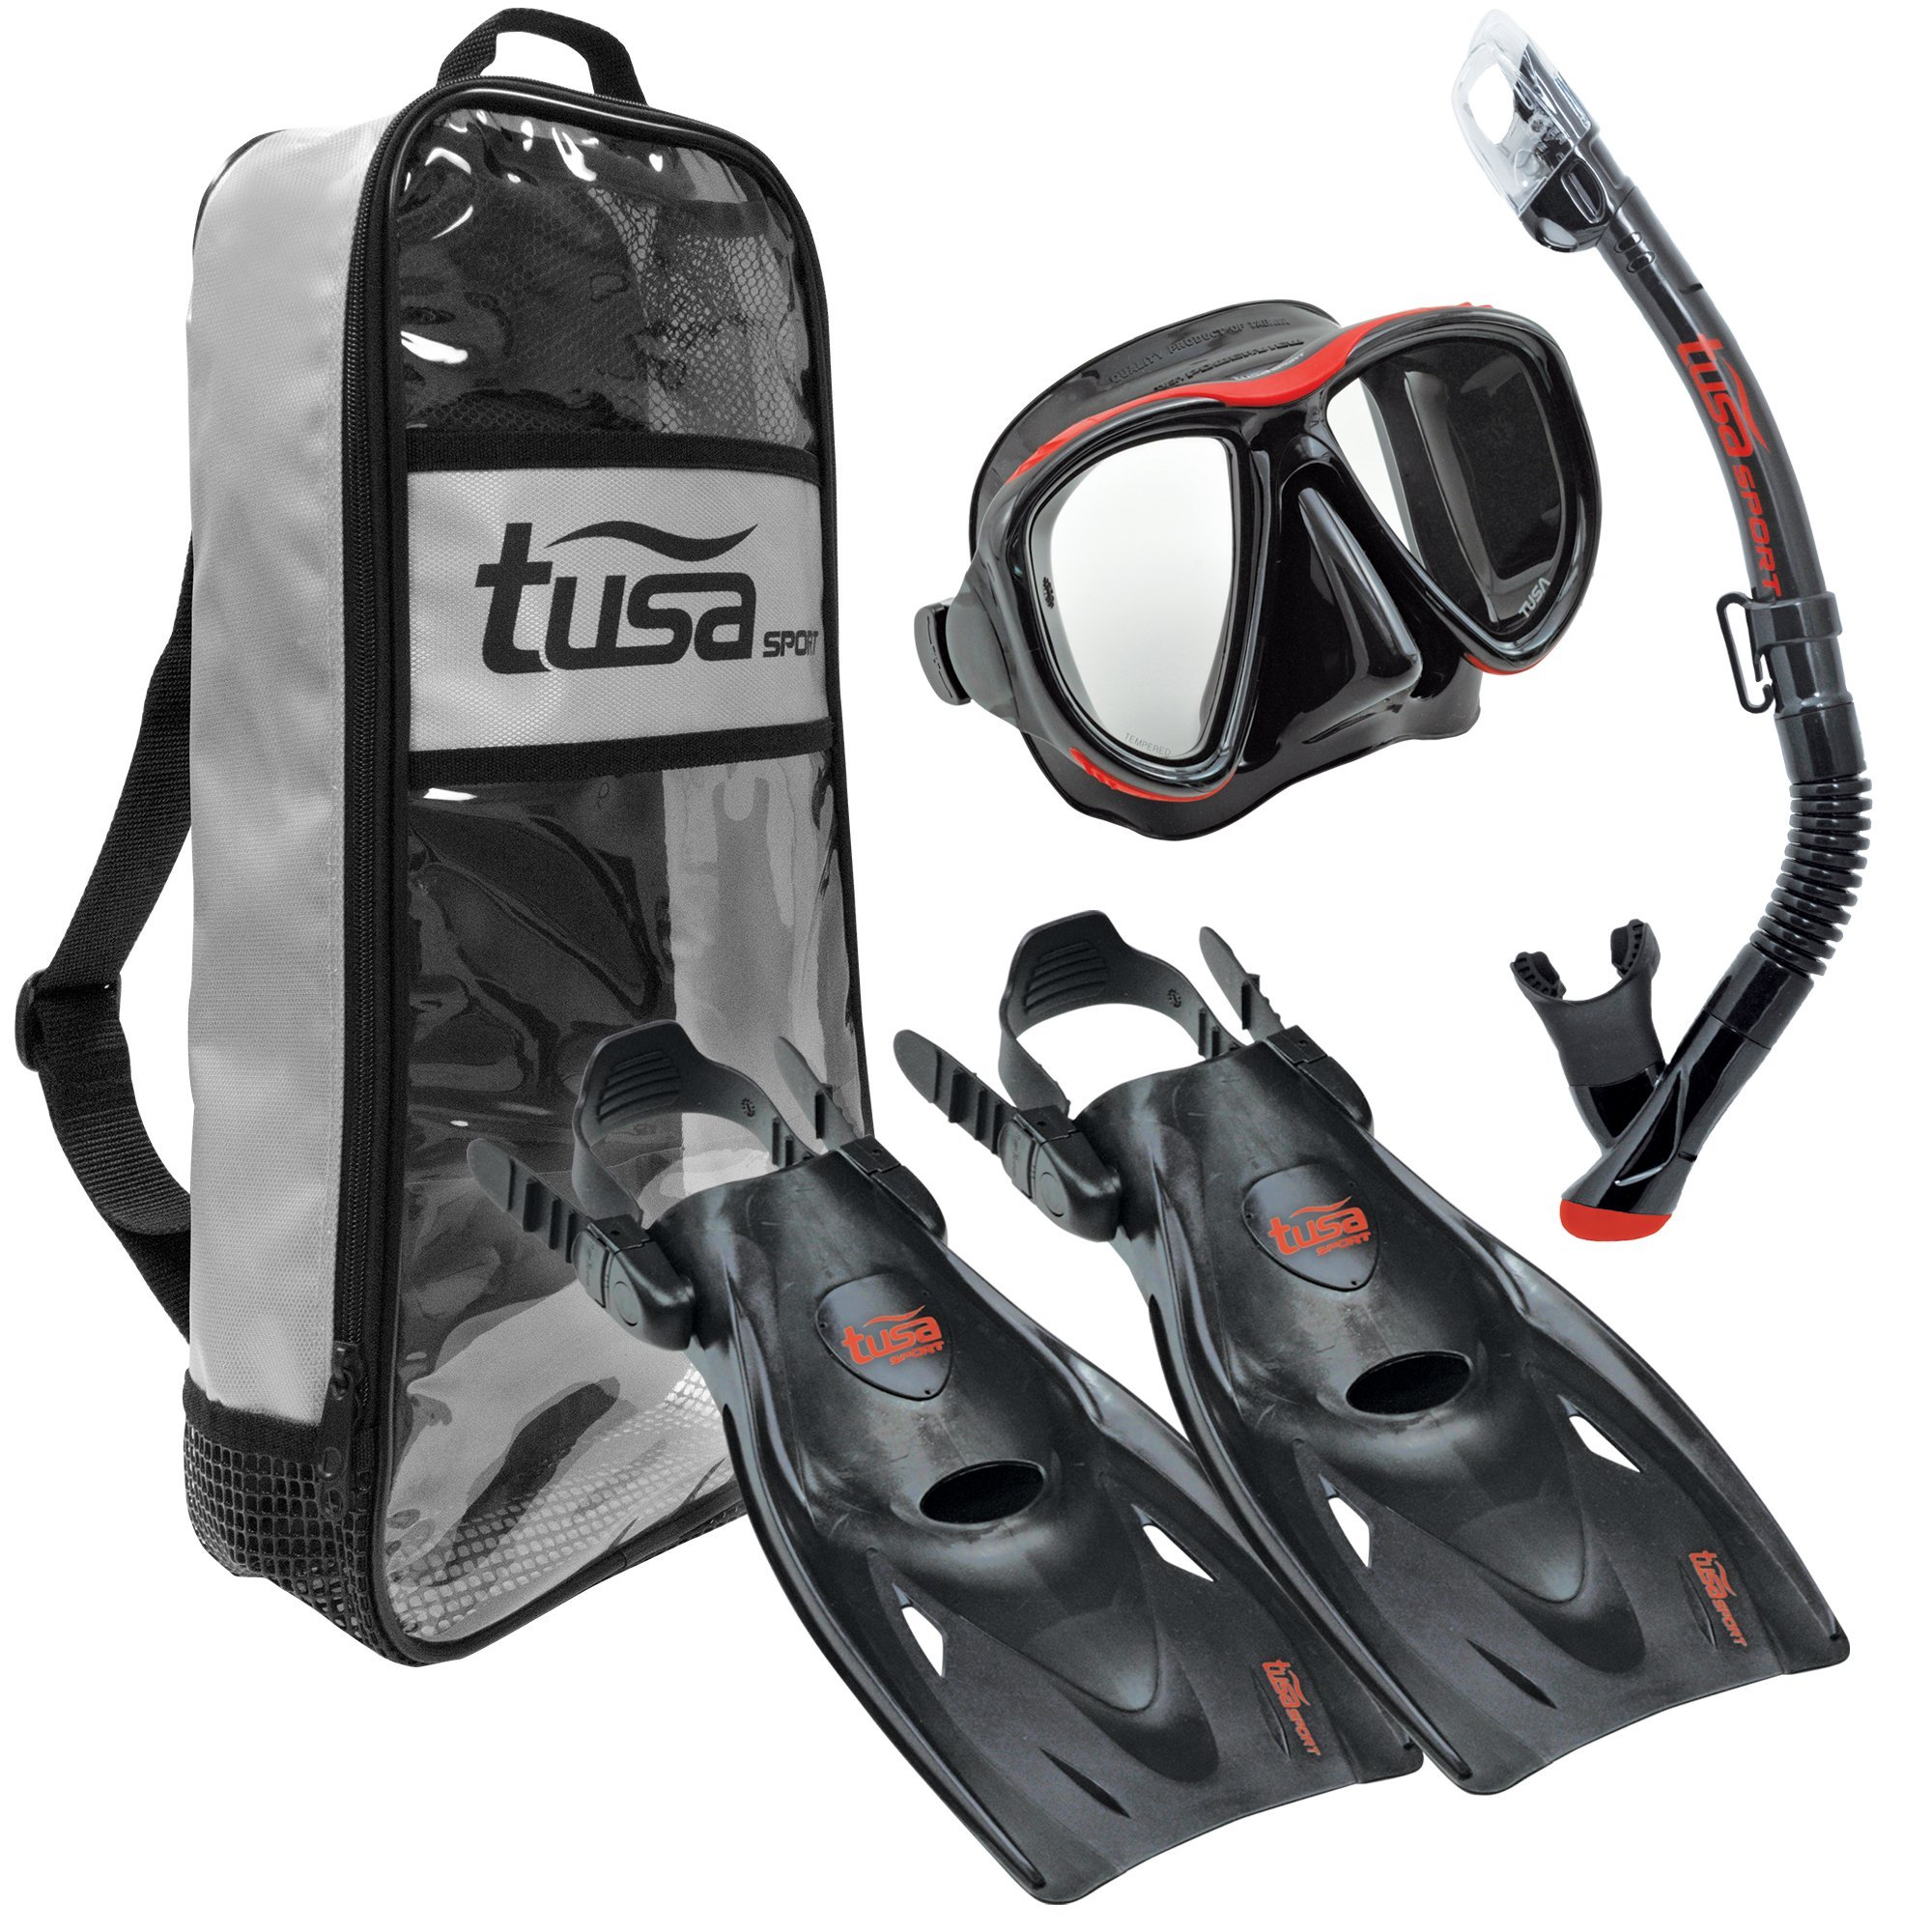 TUSA Sport Adult Powerview Mask, Dry Snorkel, and Fins Travel Set, Medium, Black/Red